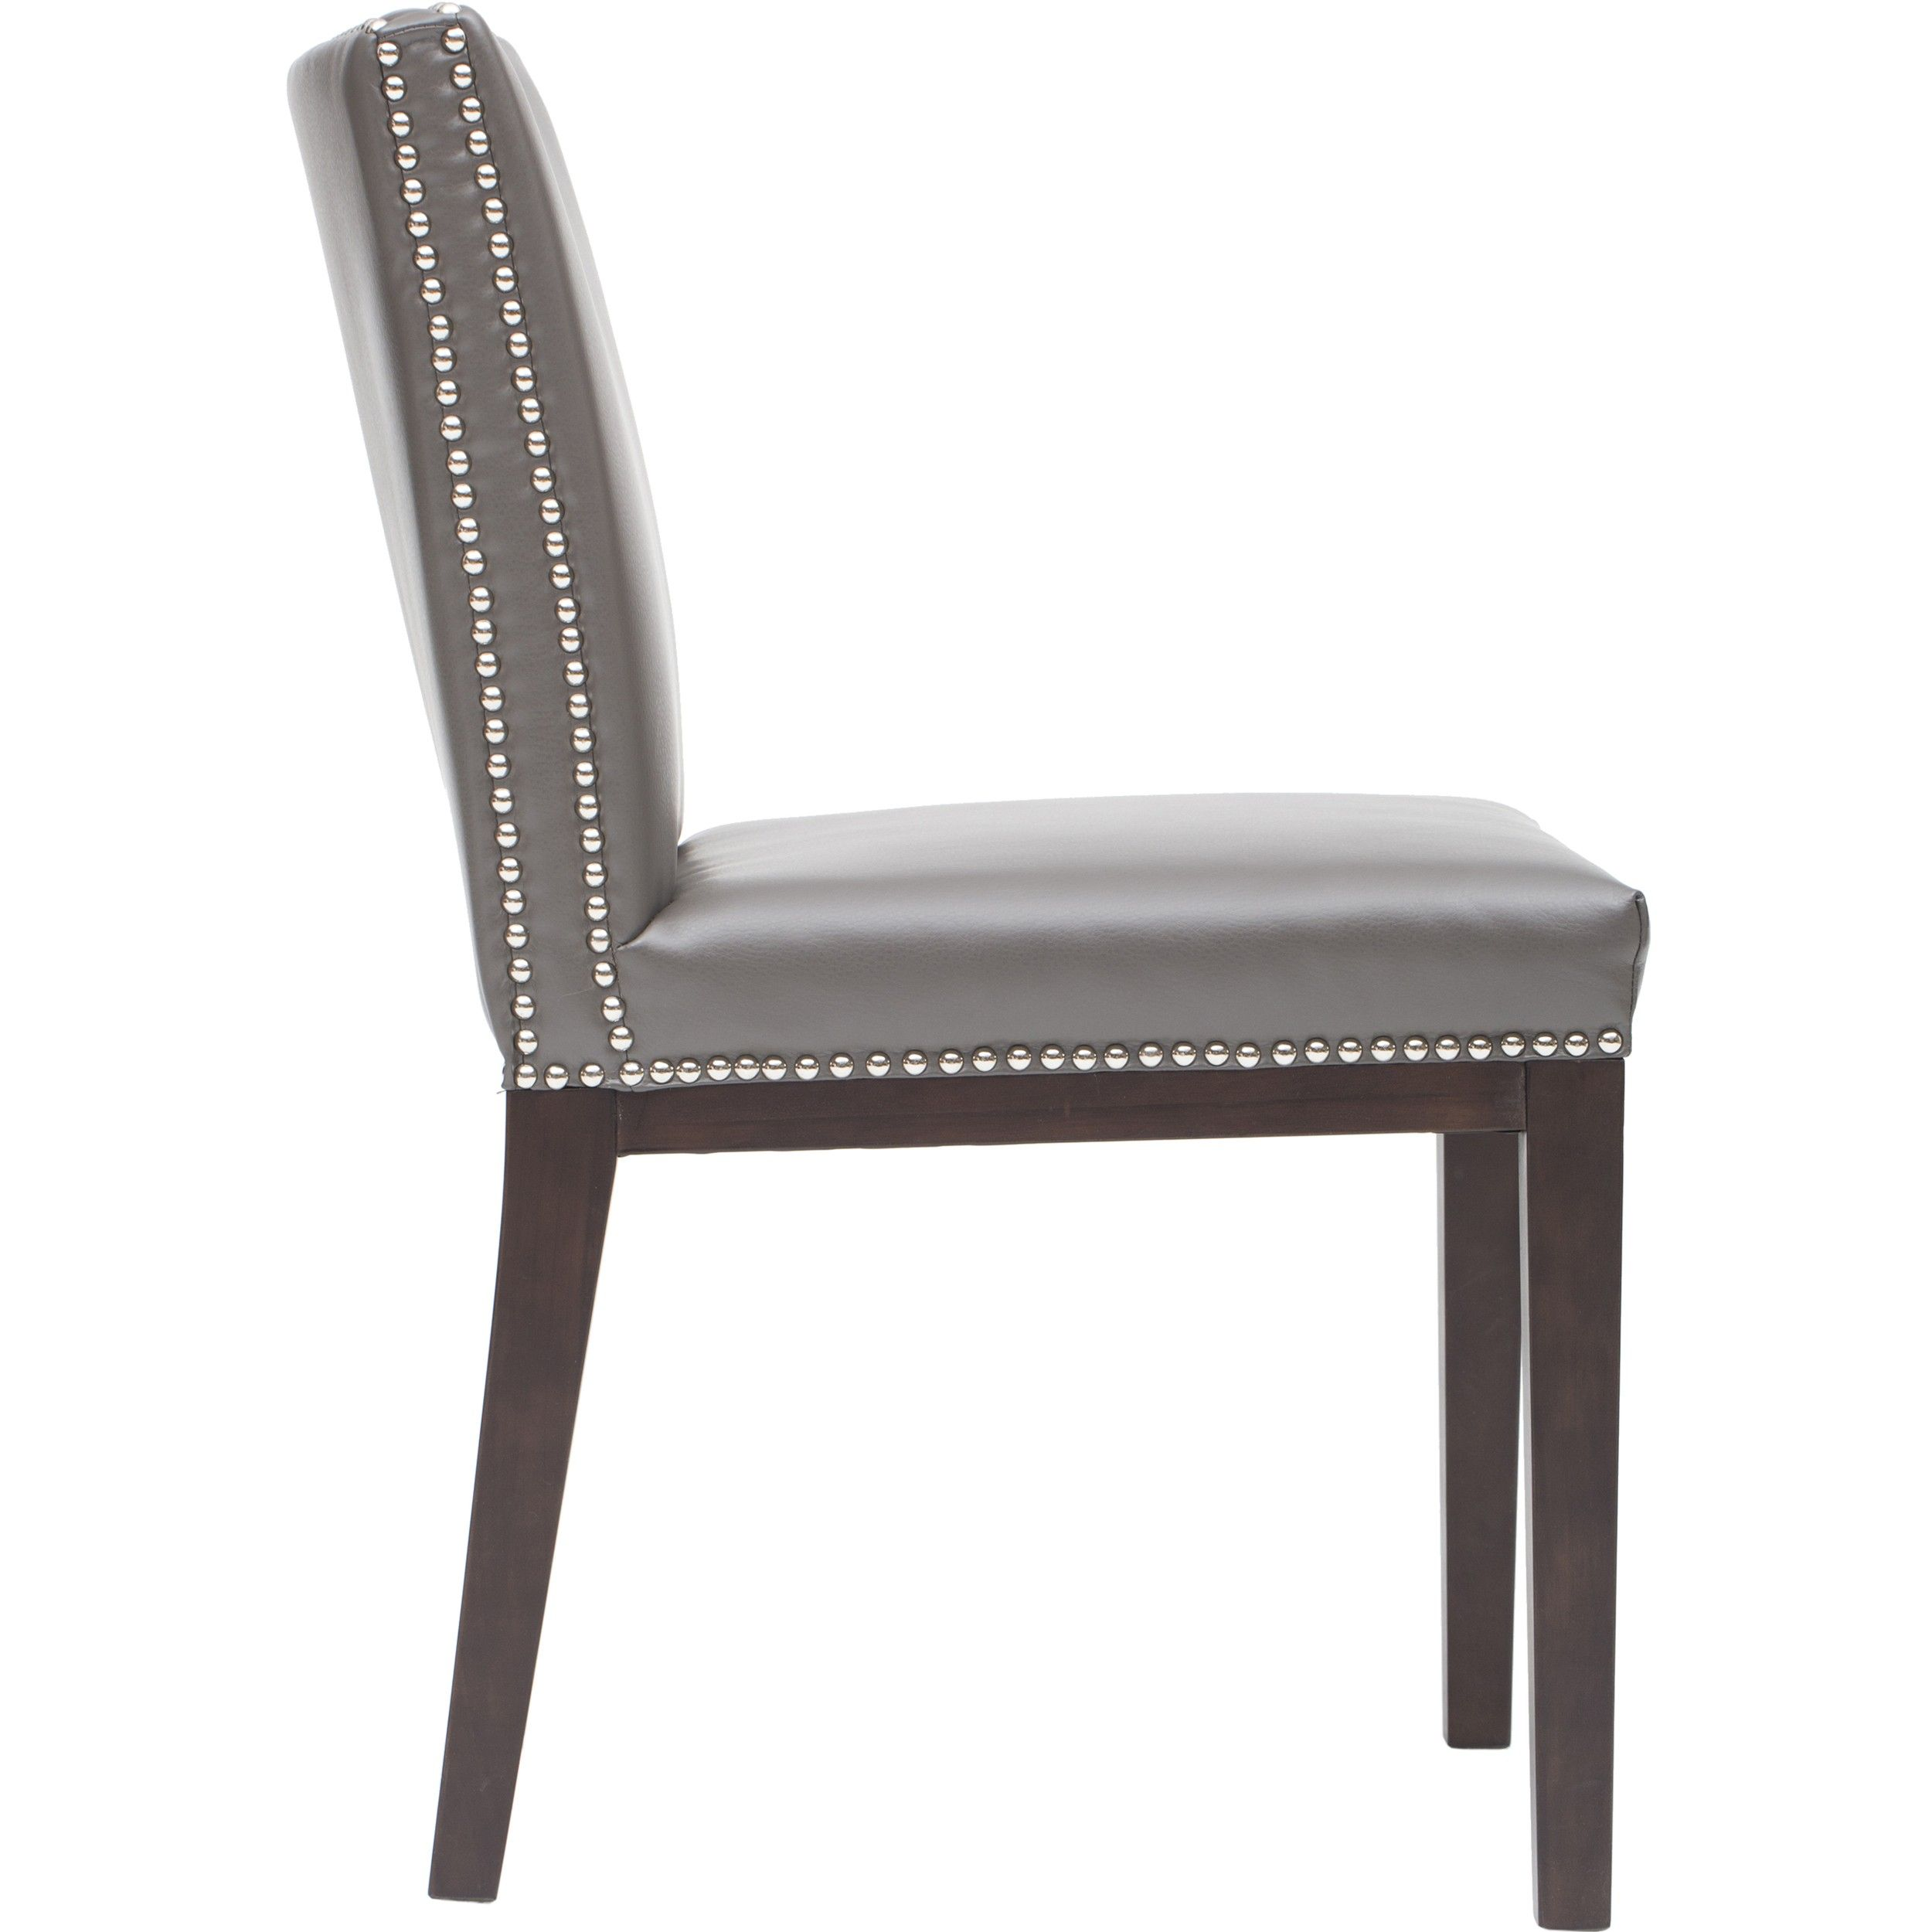 Vintage Dining Chair Pic Of Grey Leather sillas – Gray Leather Dining Room Chairs